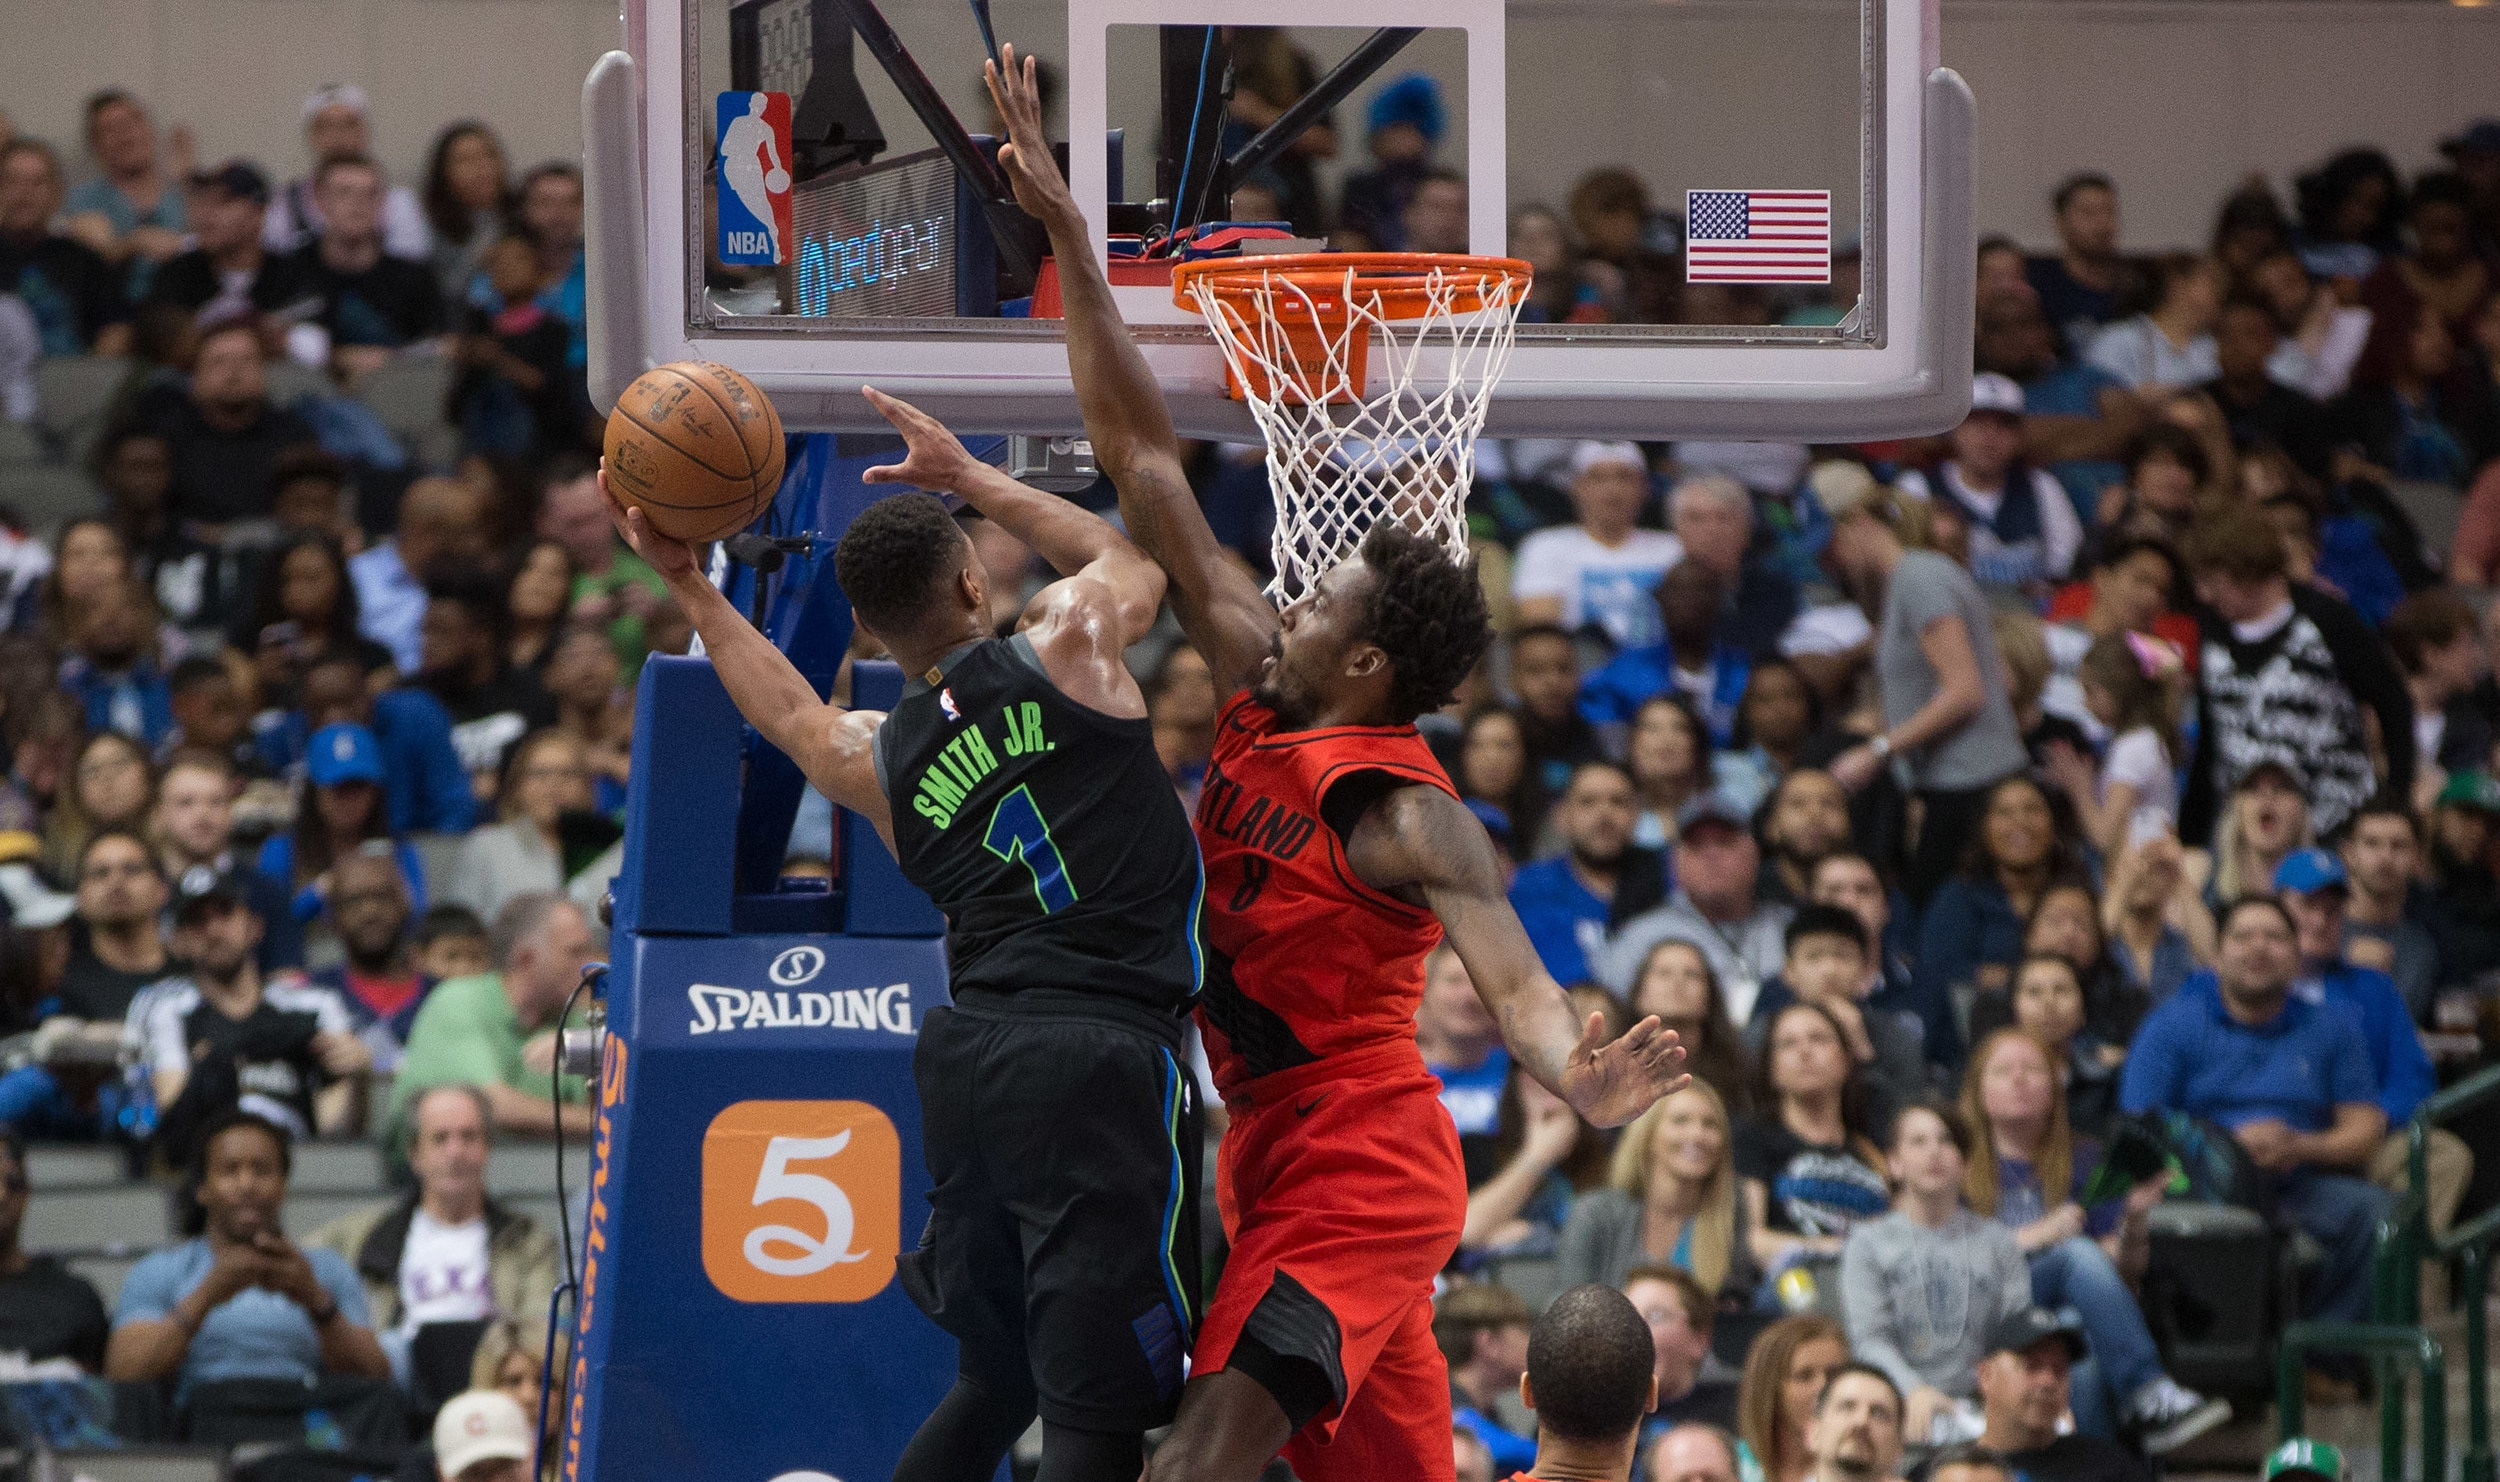 Blazers In Search Of First Texas Trip Win Tuesday Versus Mavericks